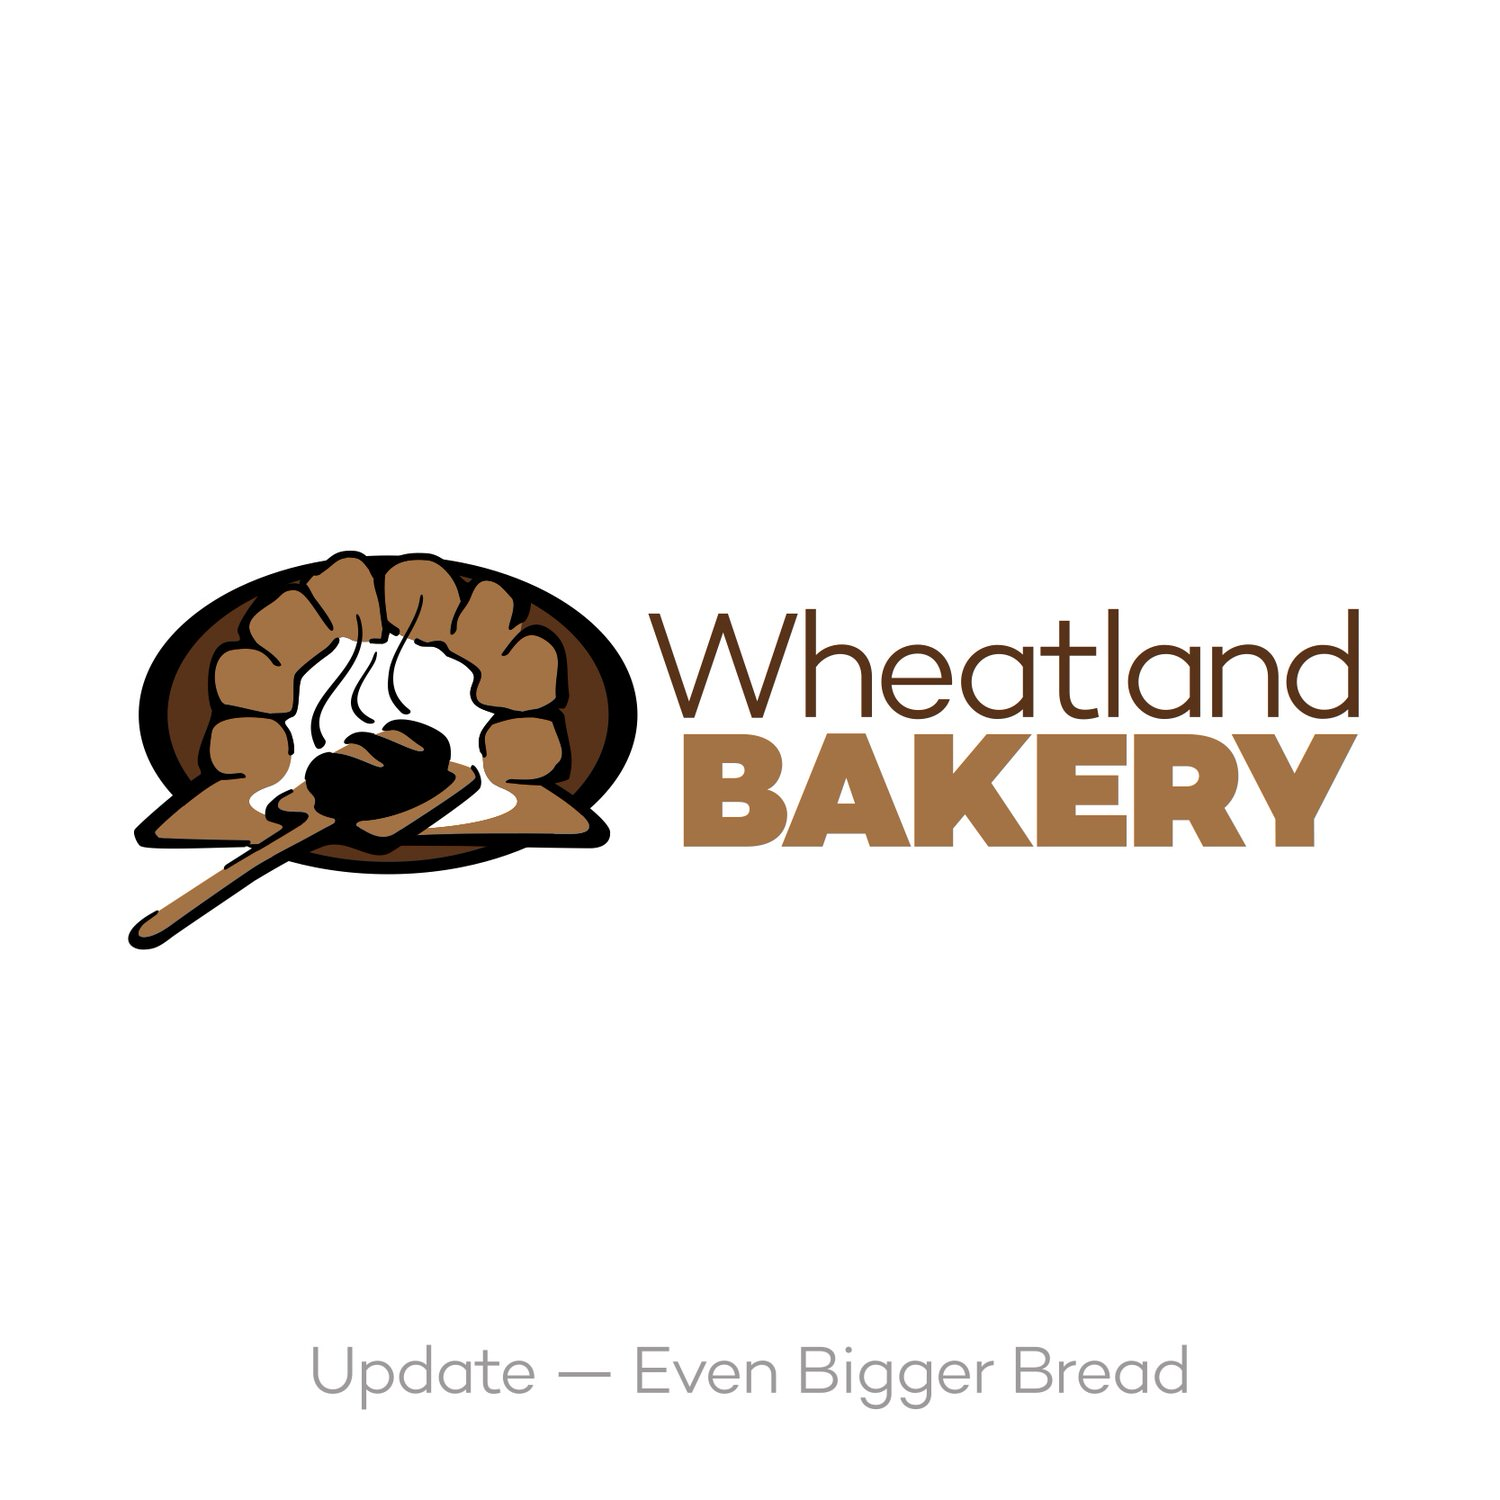 Wheatland-Logo-Options-08.jpg